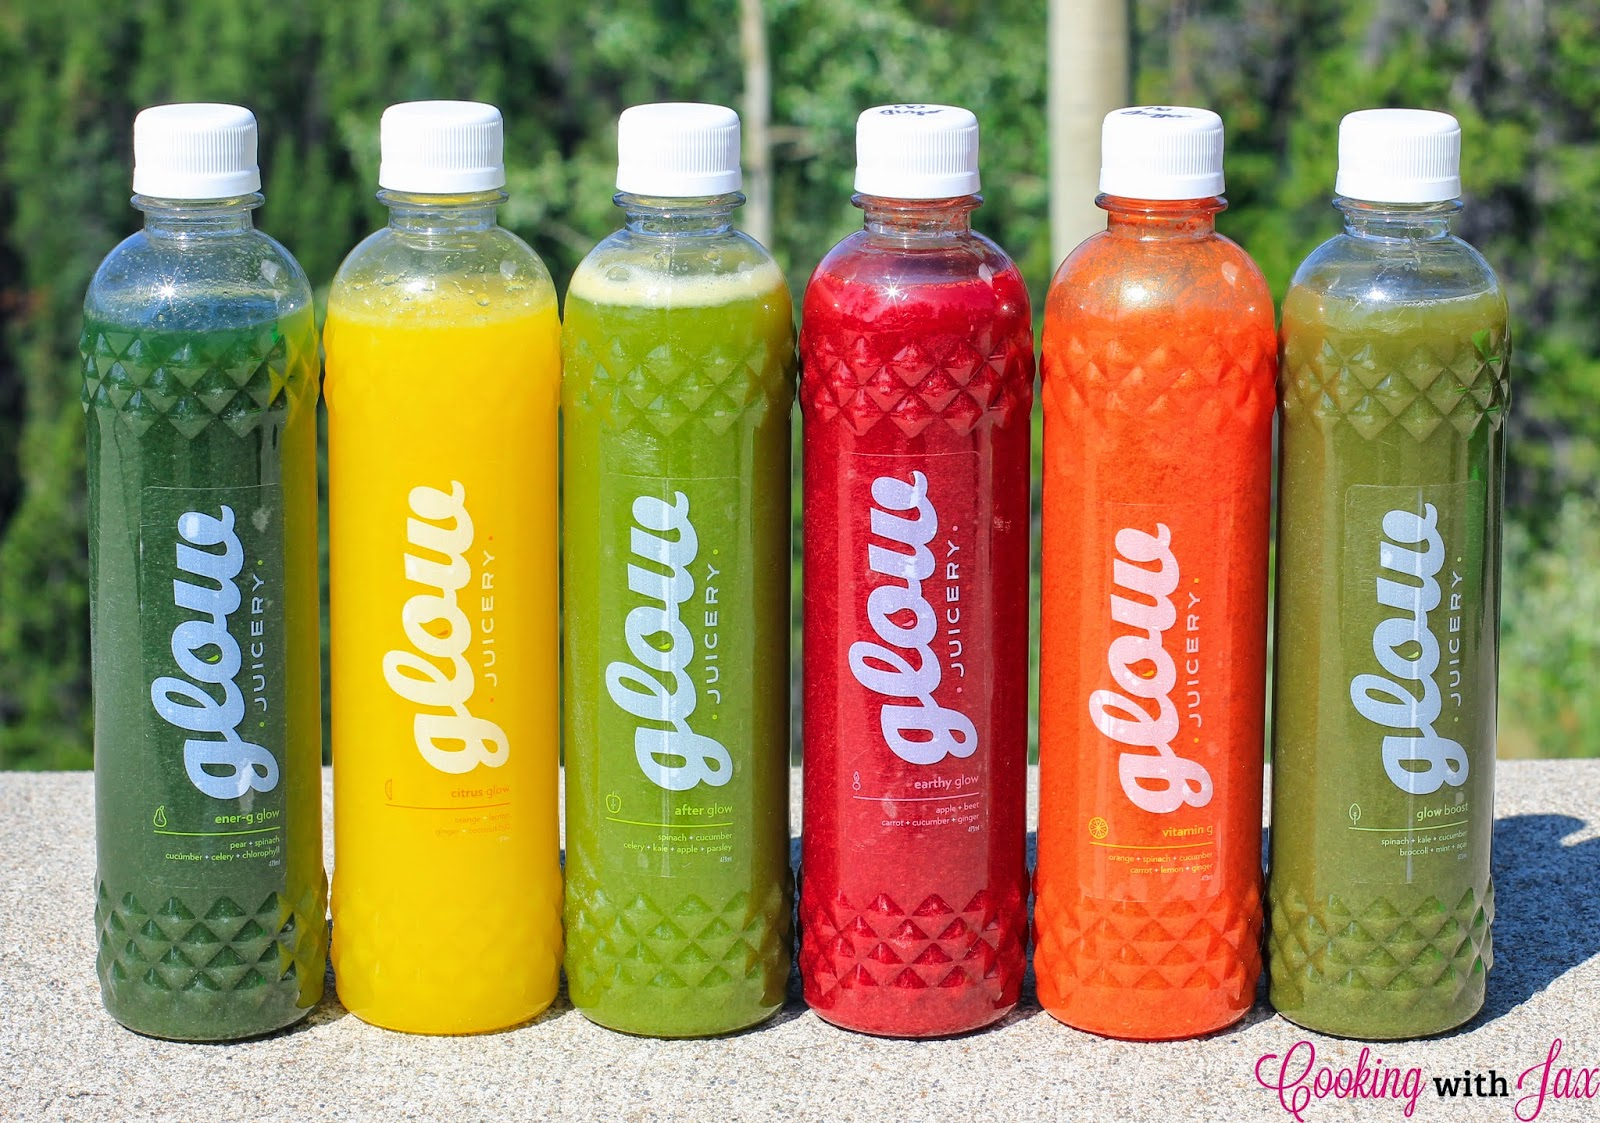 Cooking with Jax: Review/Giveaway: Glow 3 Day Beginner's ...